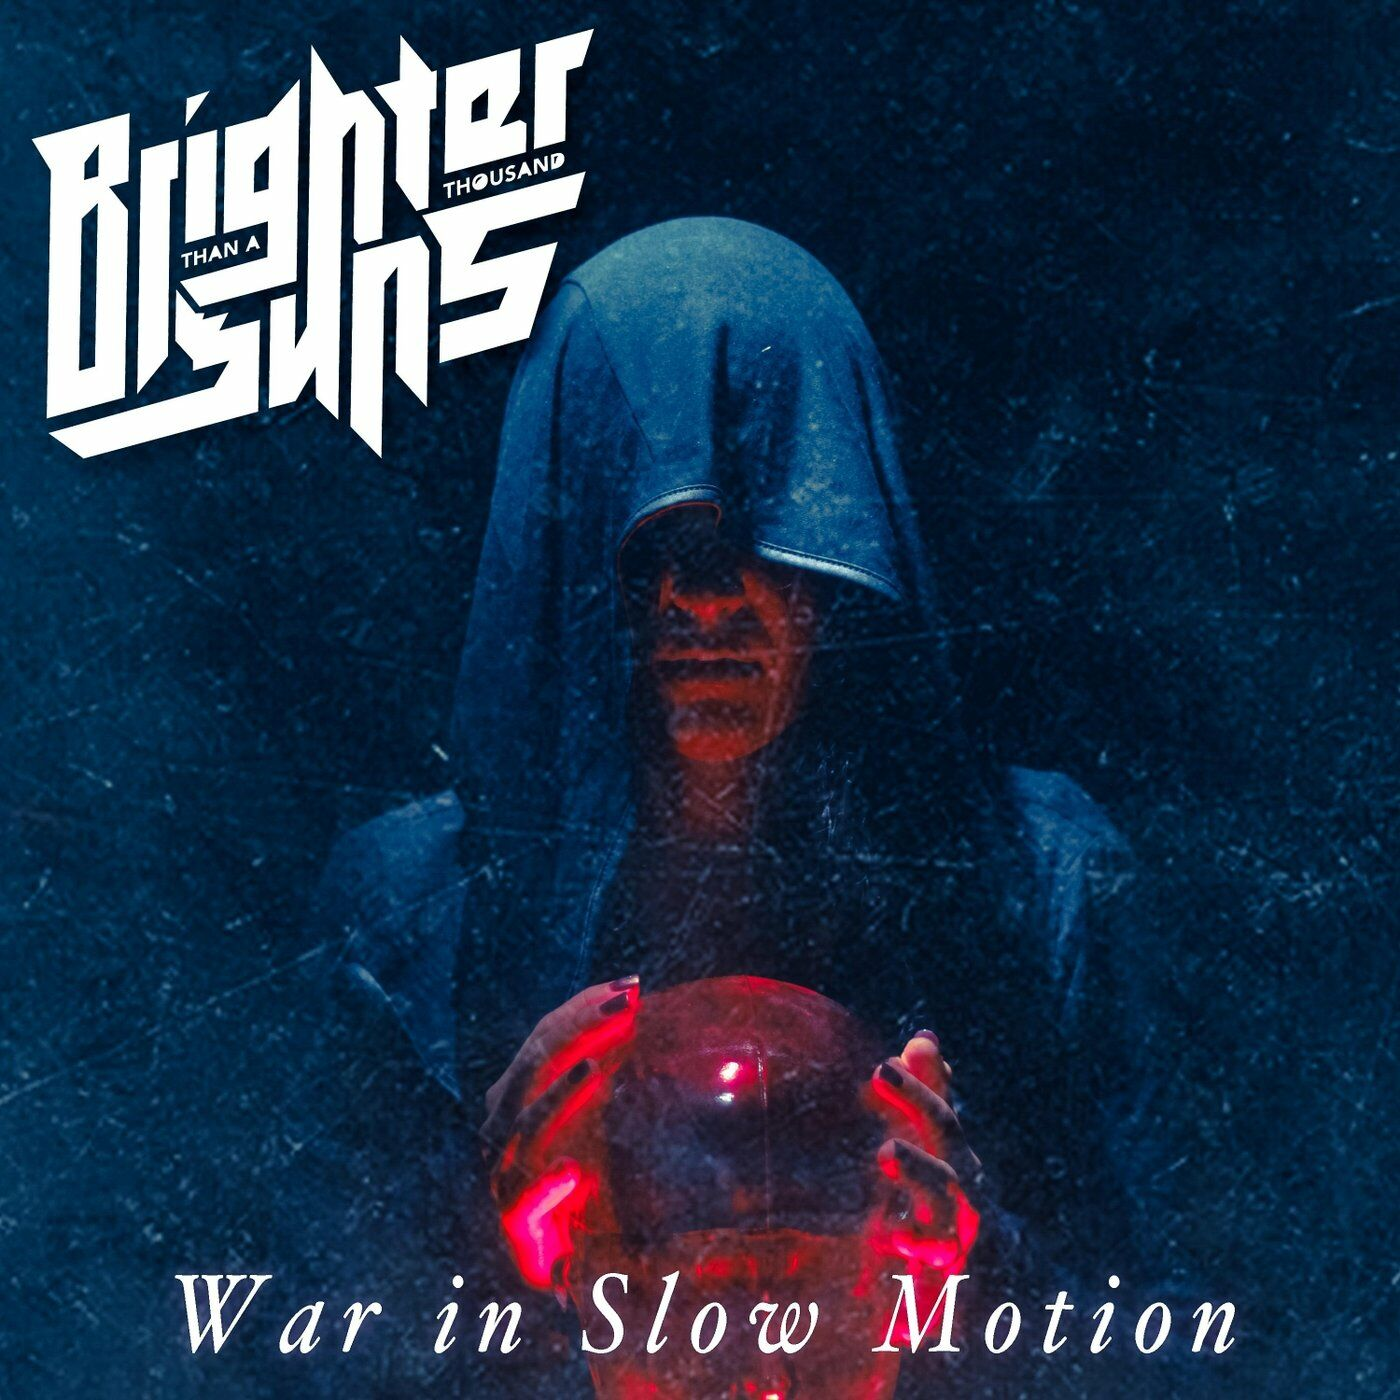 Brighter Than a Thousand Suns - War in Slow Motion [single] (2020)